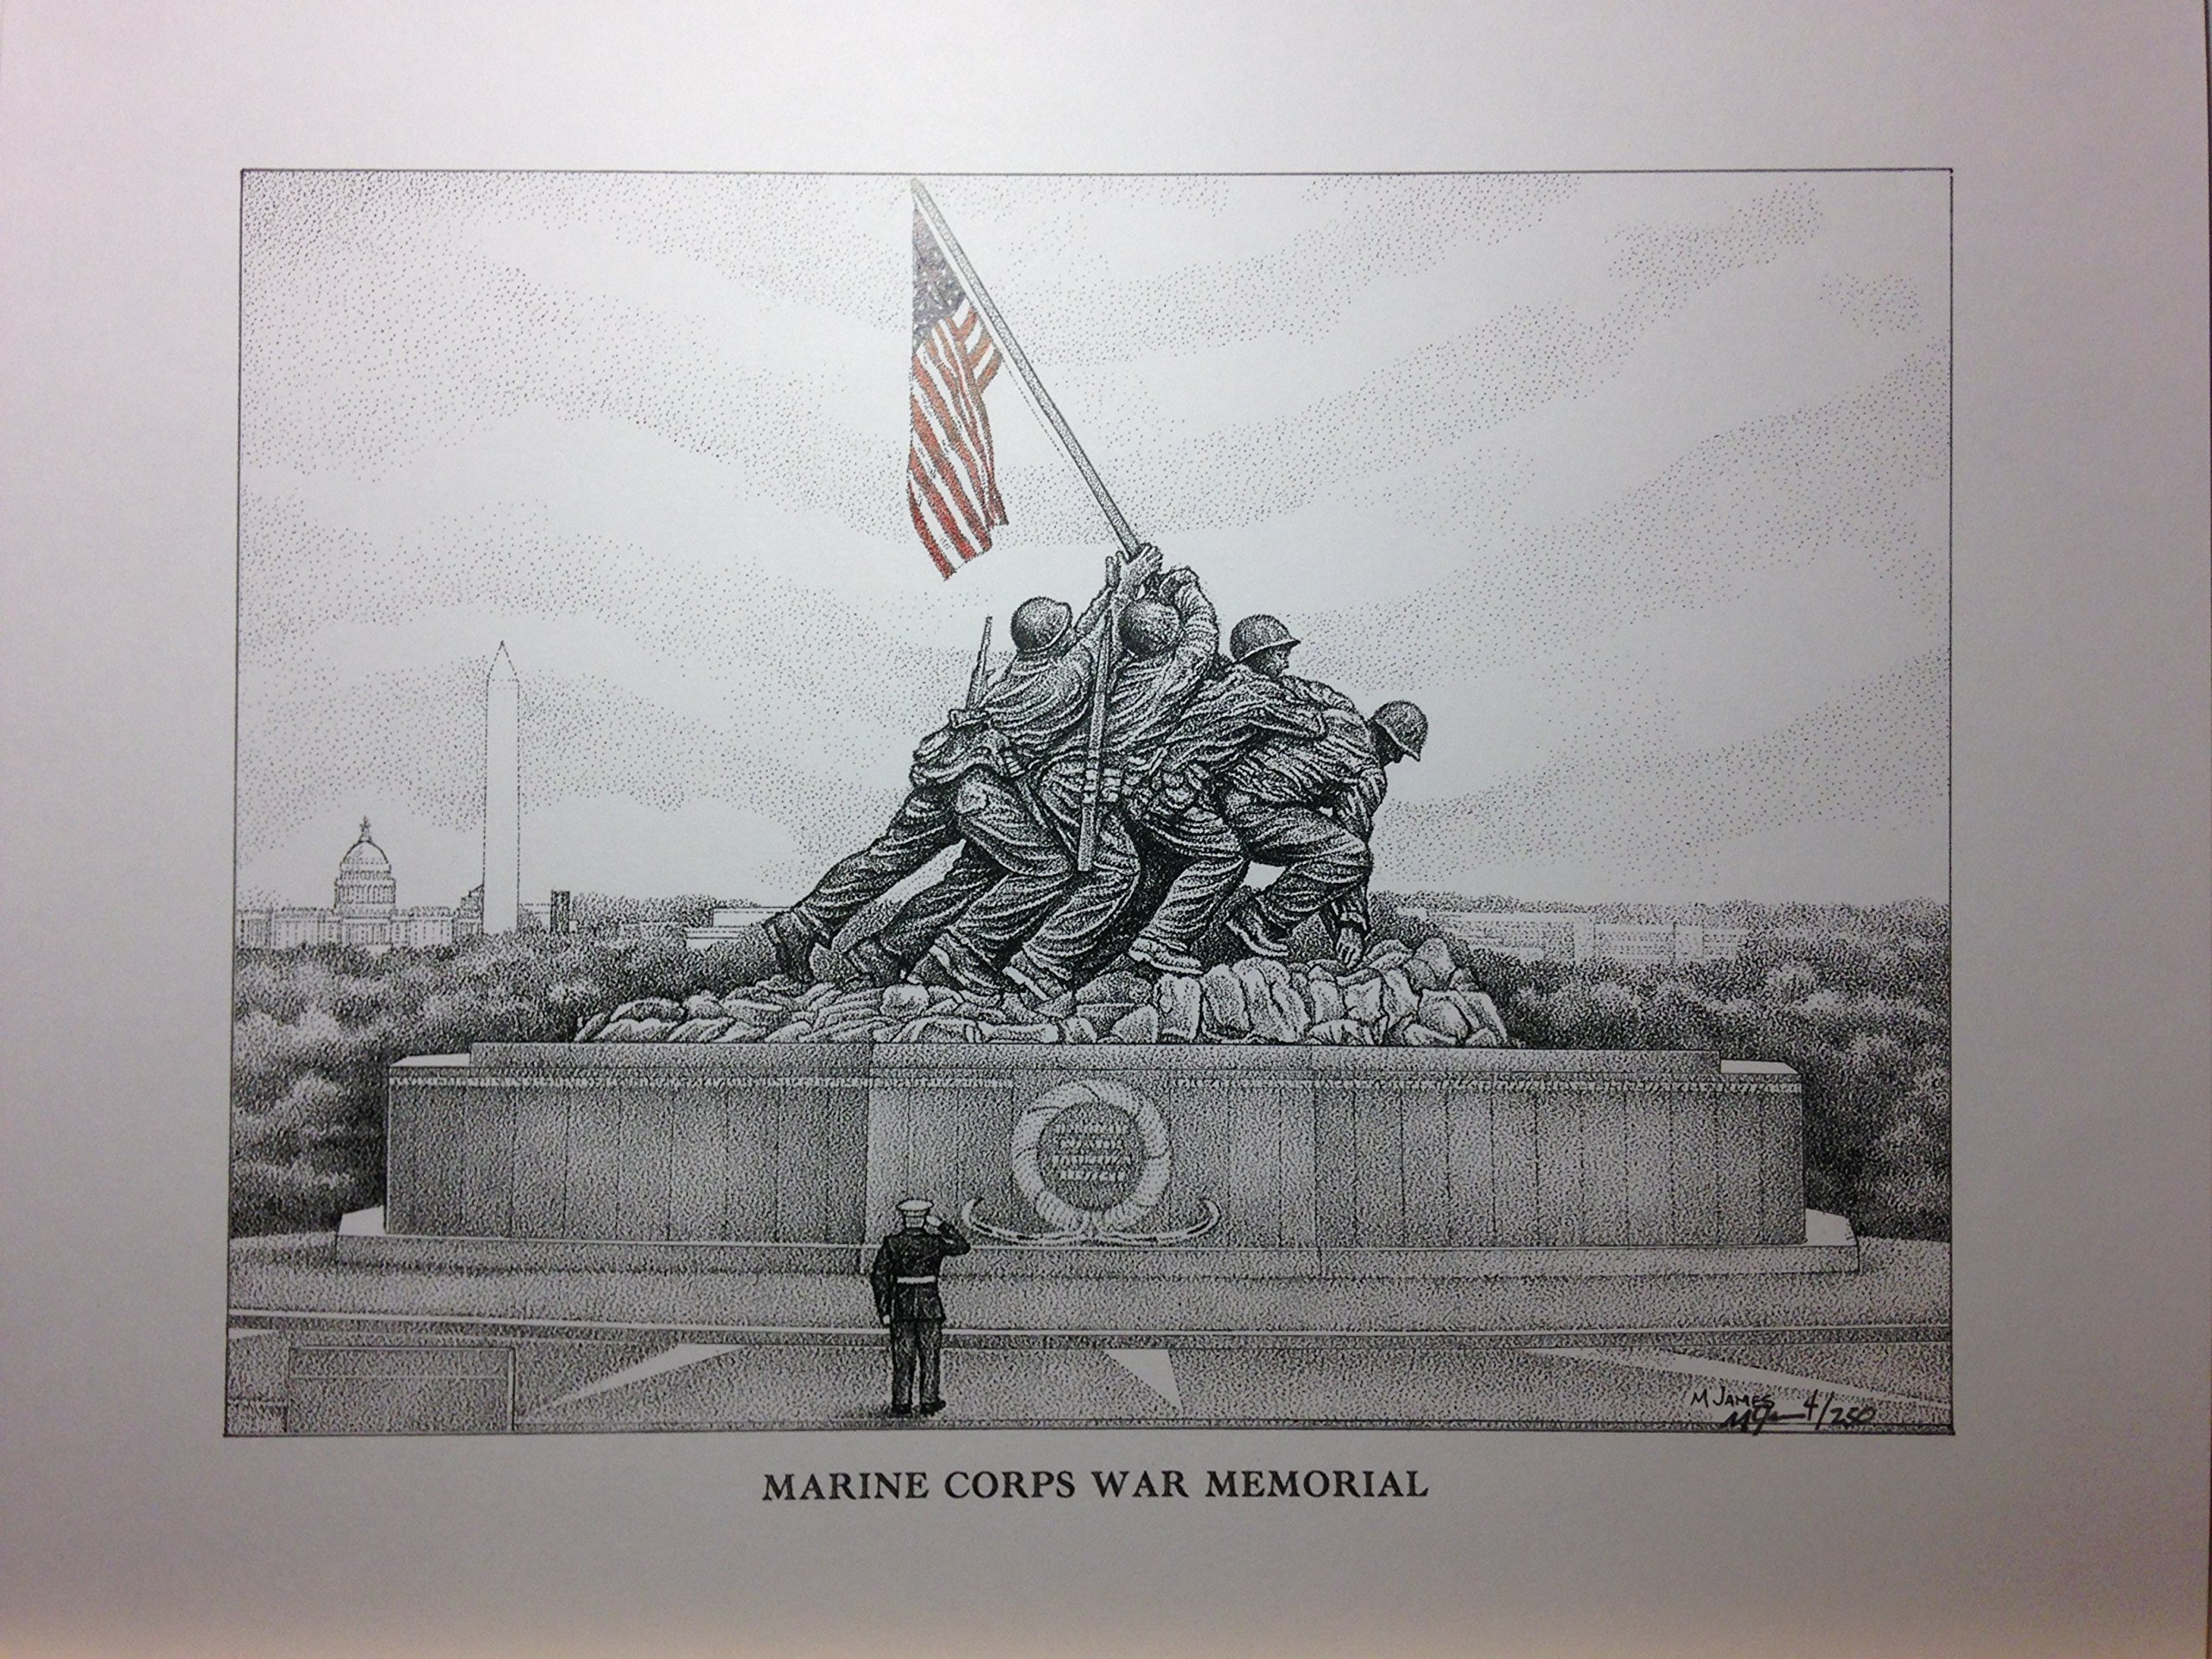 Marine Corps War Memorial (Iwo Jima Flag Raising) 11''x14'' signed/numbered print by Campus Scenes